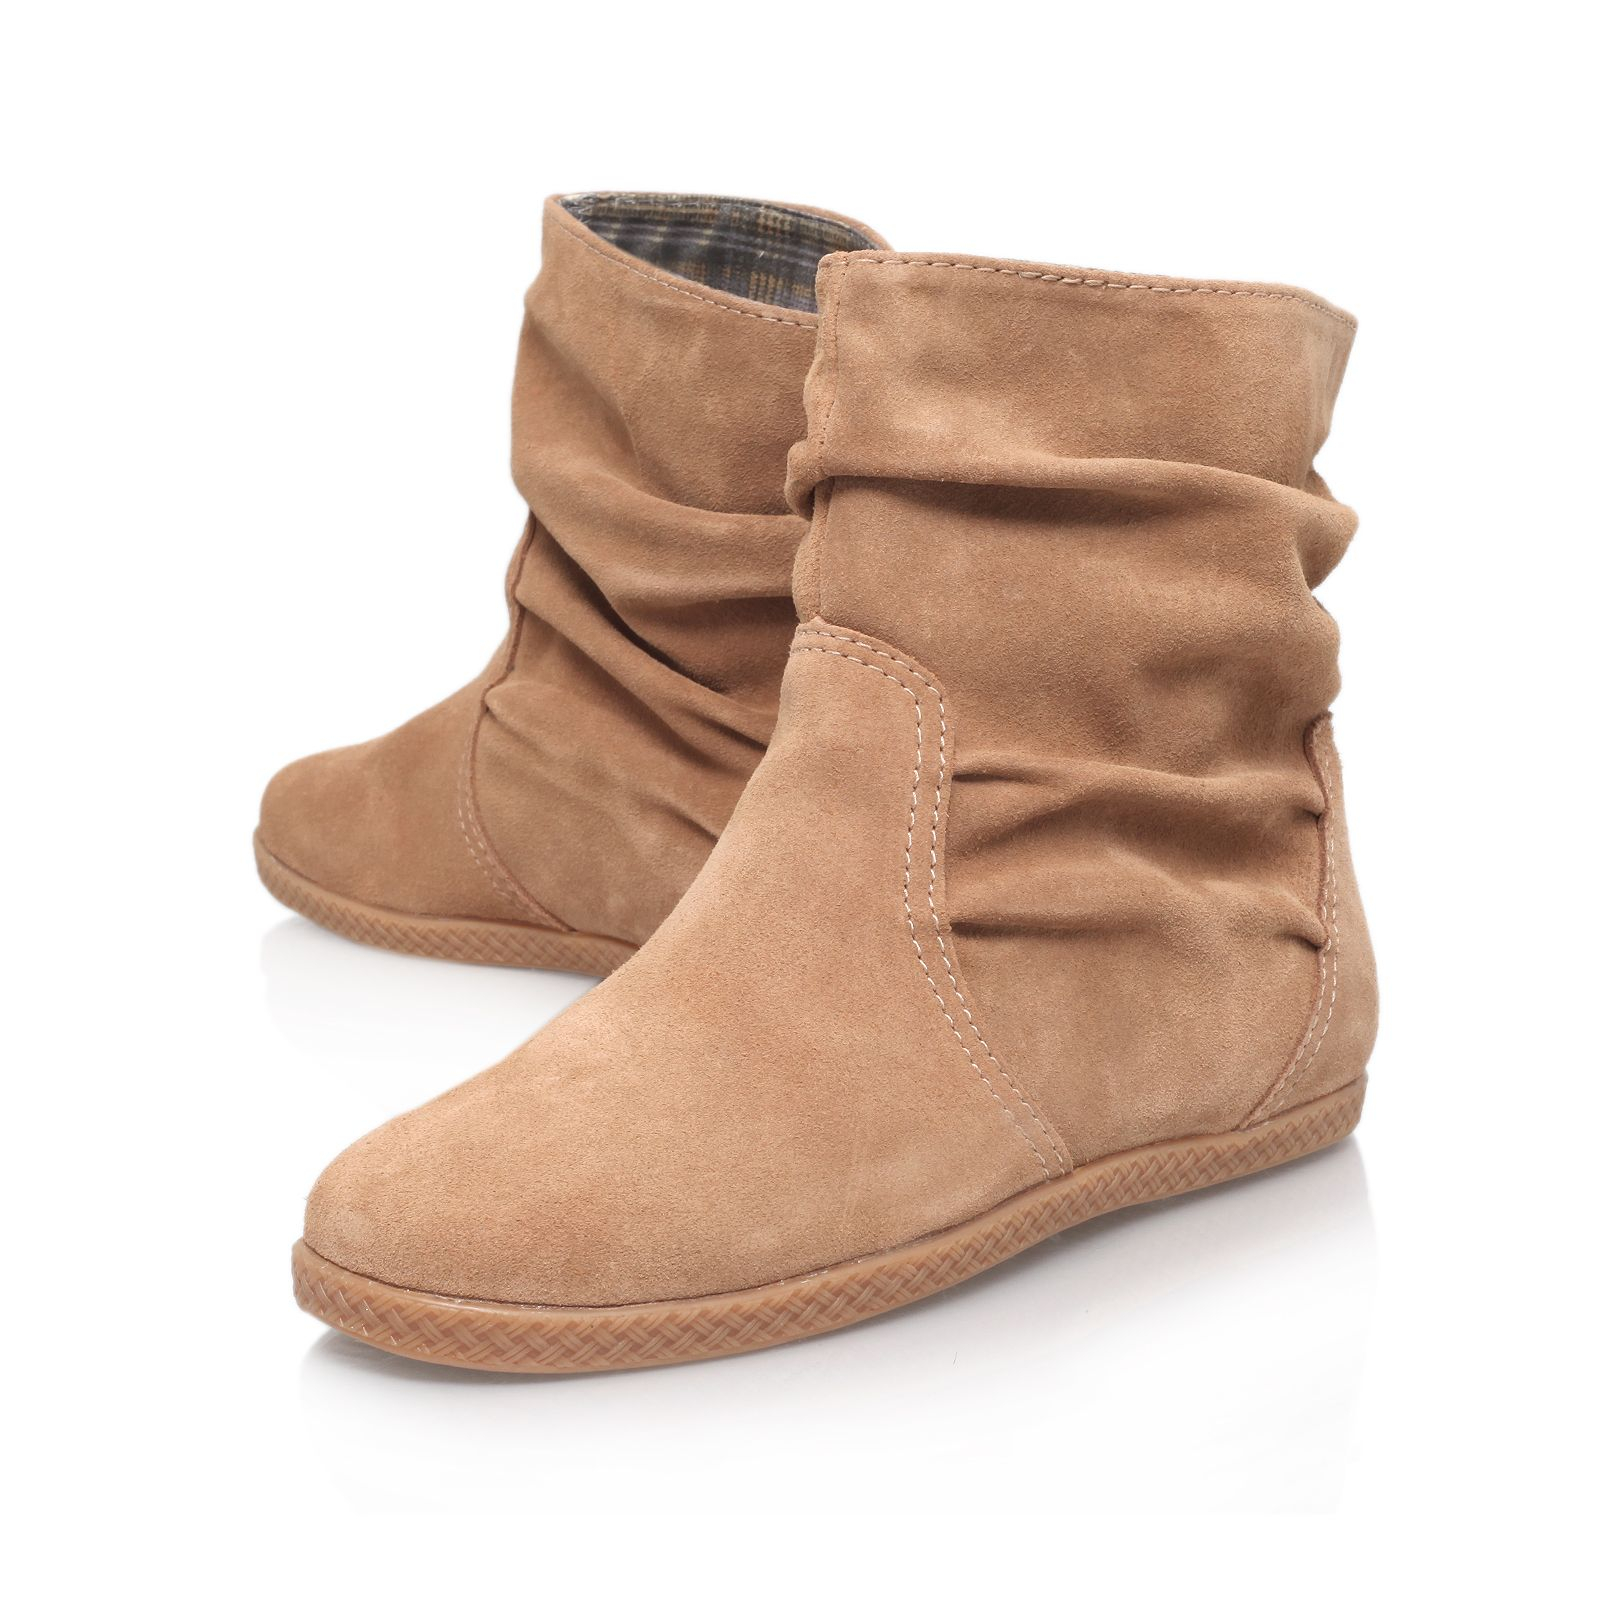 Nine west Rockinout Flat Ankle Boots in Natural | Lyst